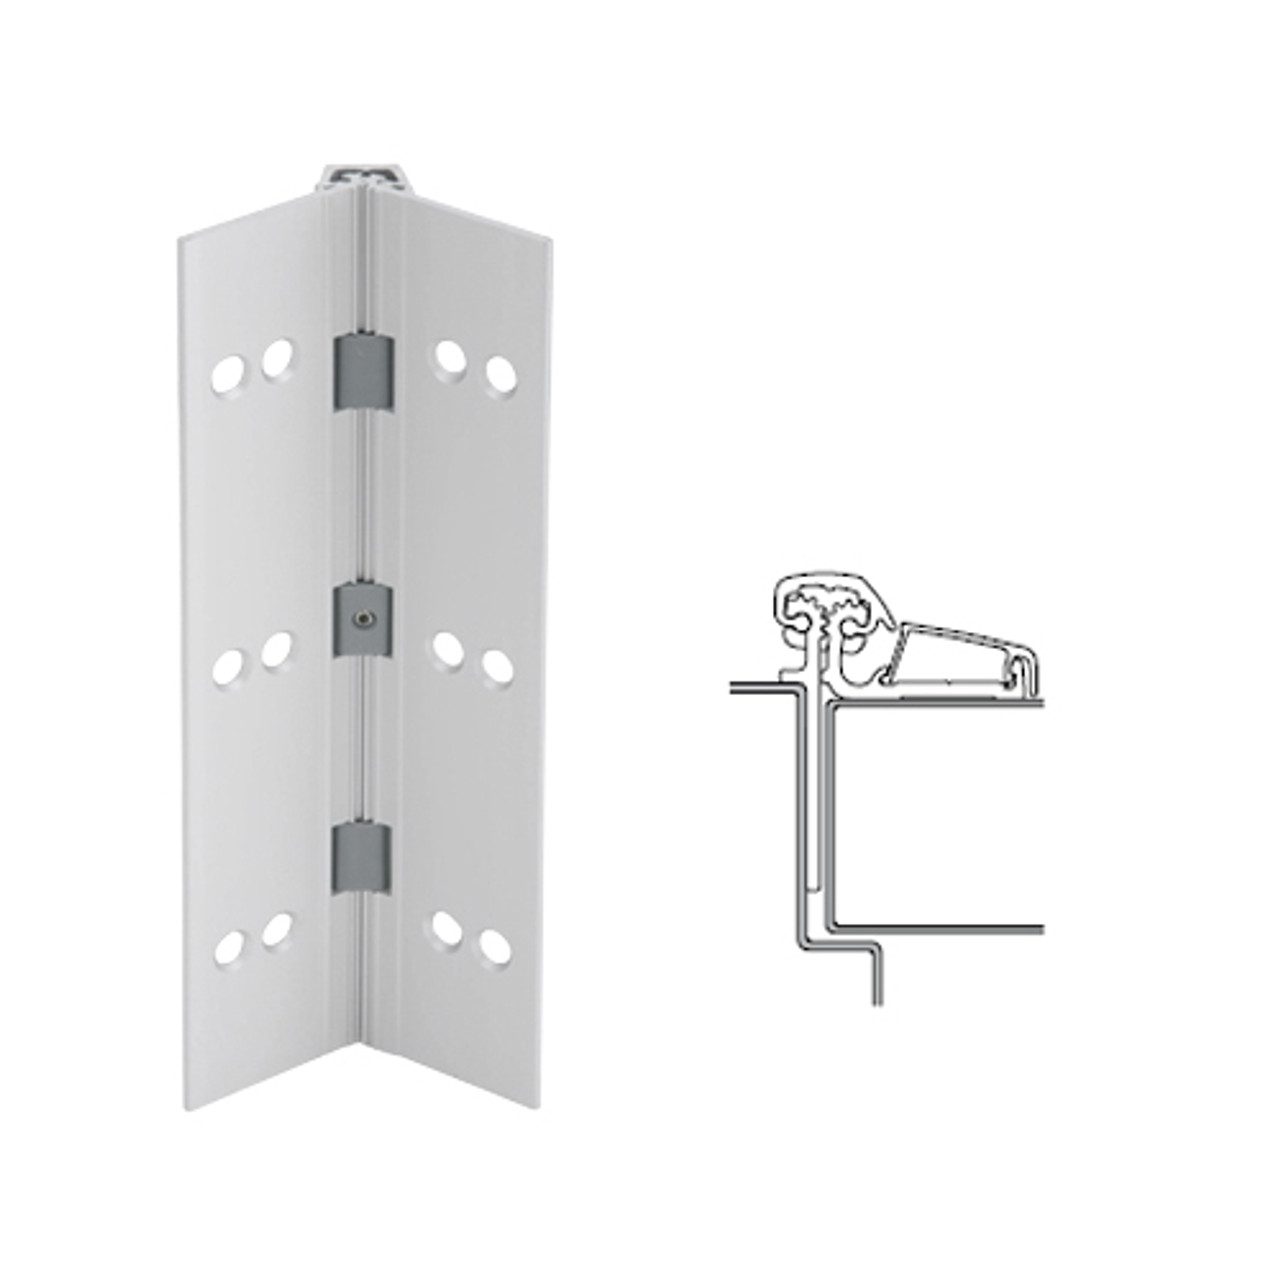 053XY-US28-83-TEKWD IVES Adjustable Half Surface Continuous Geared Hinges with Wood Screws in Satin Aluminum